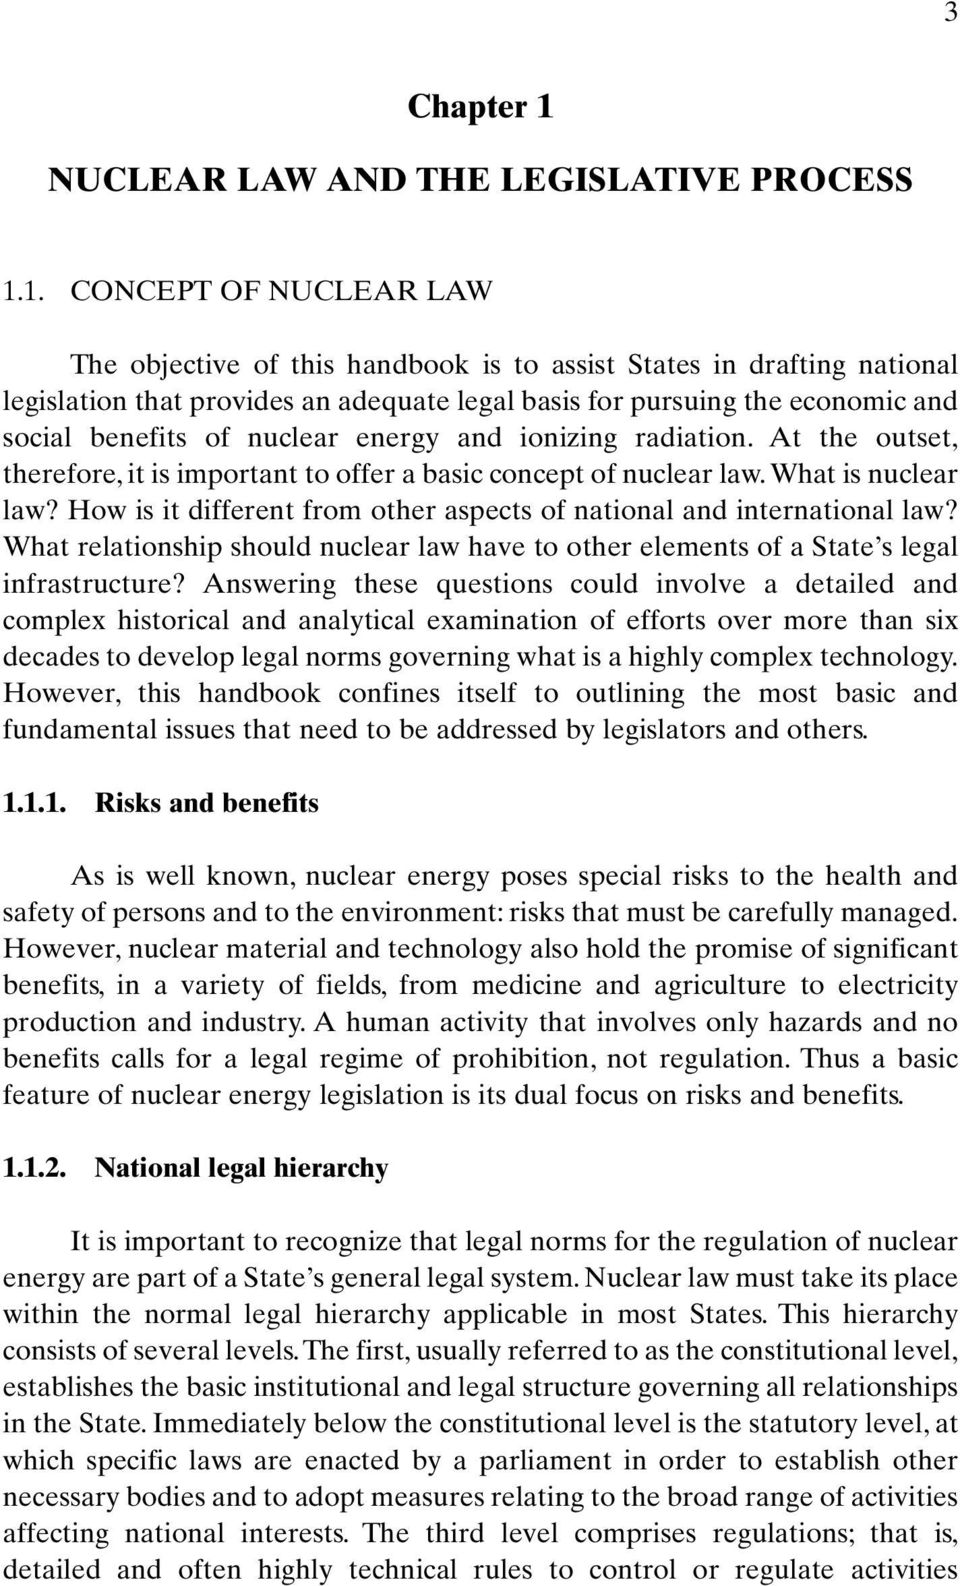 NUCLEAR LAW AND THE LEGISLATIVE PROCESS 1.